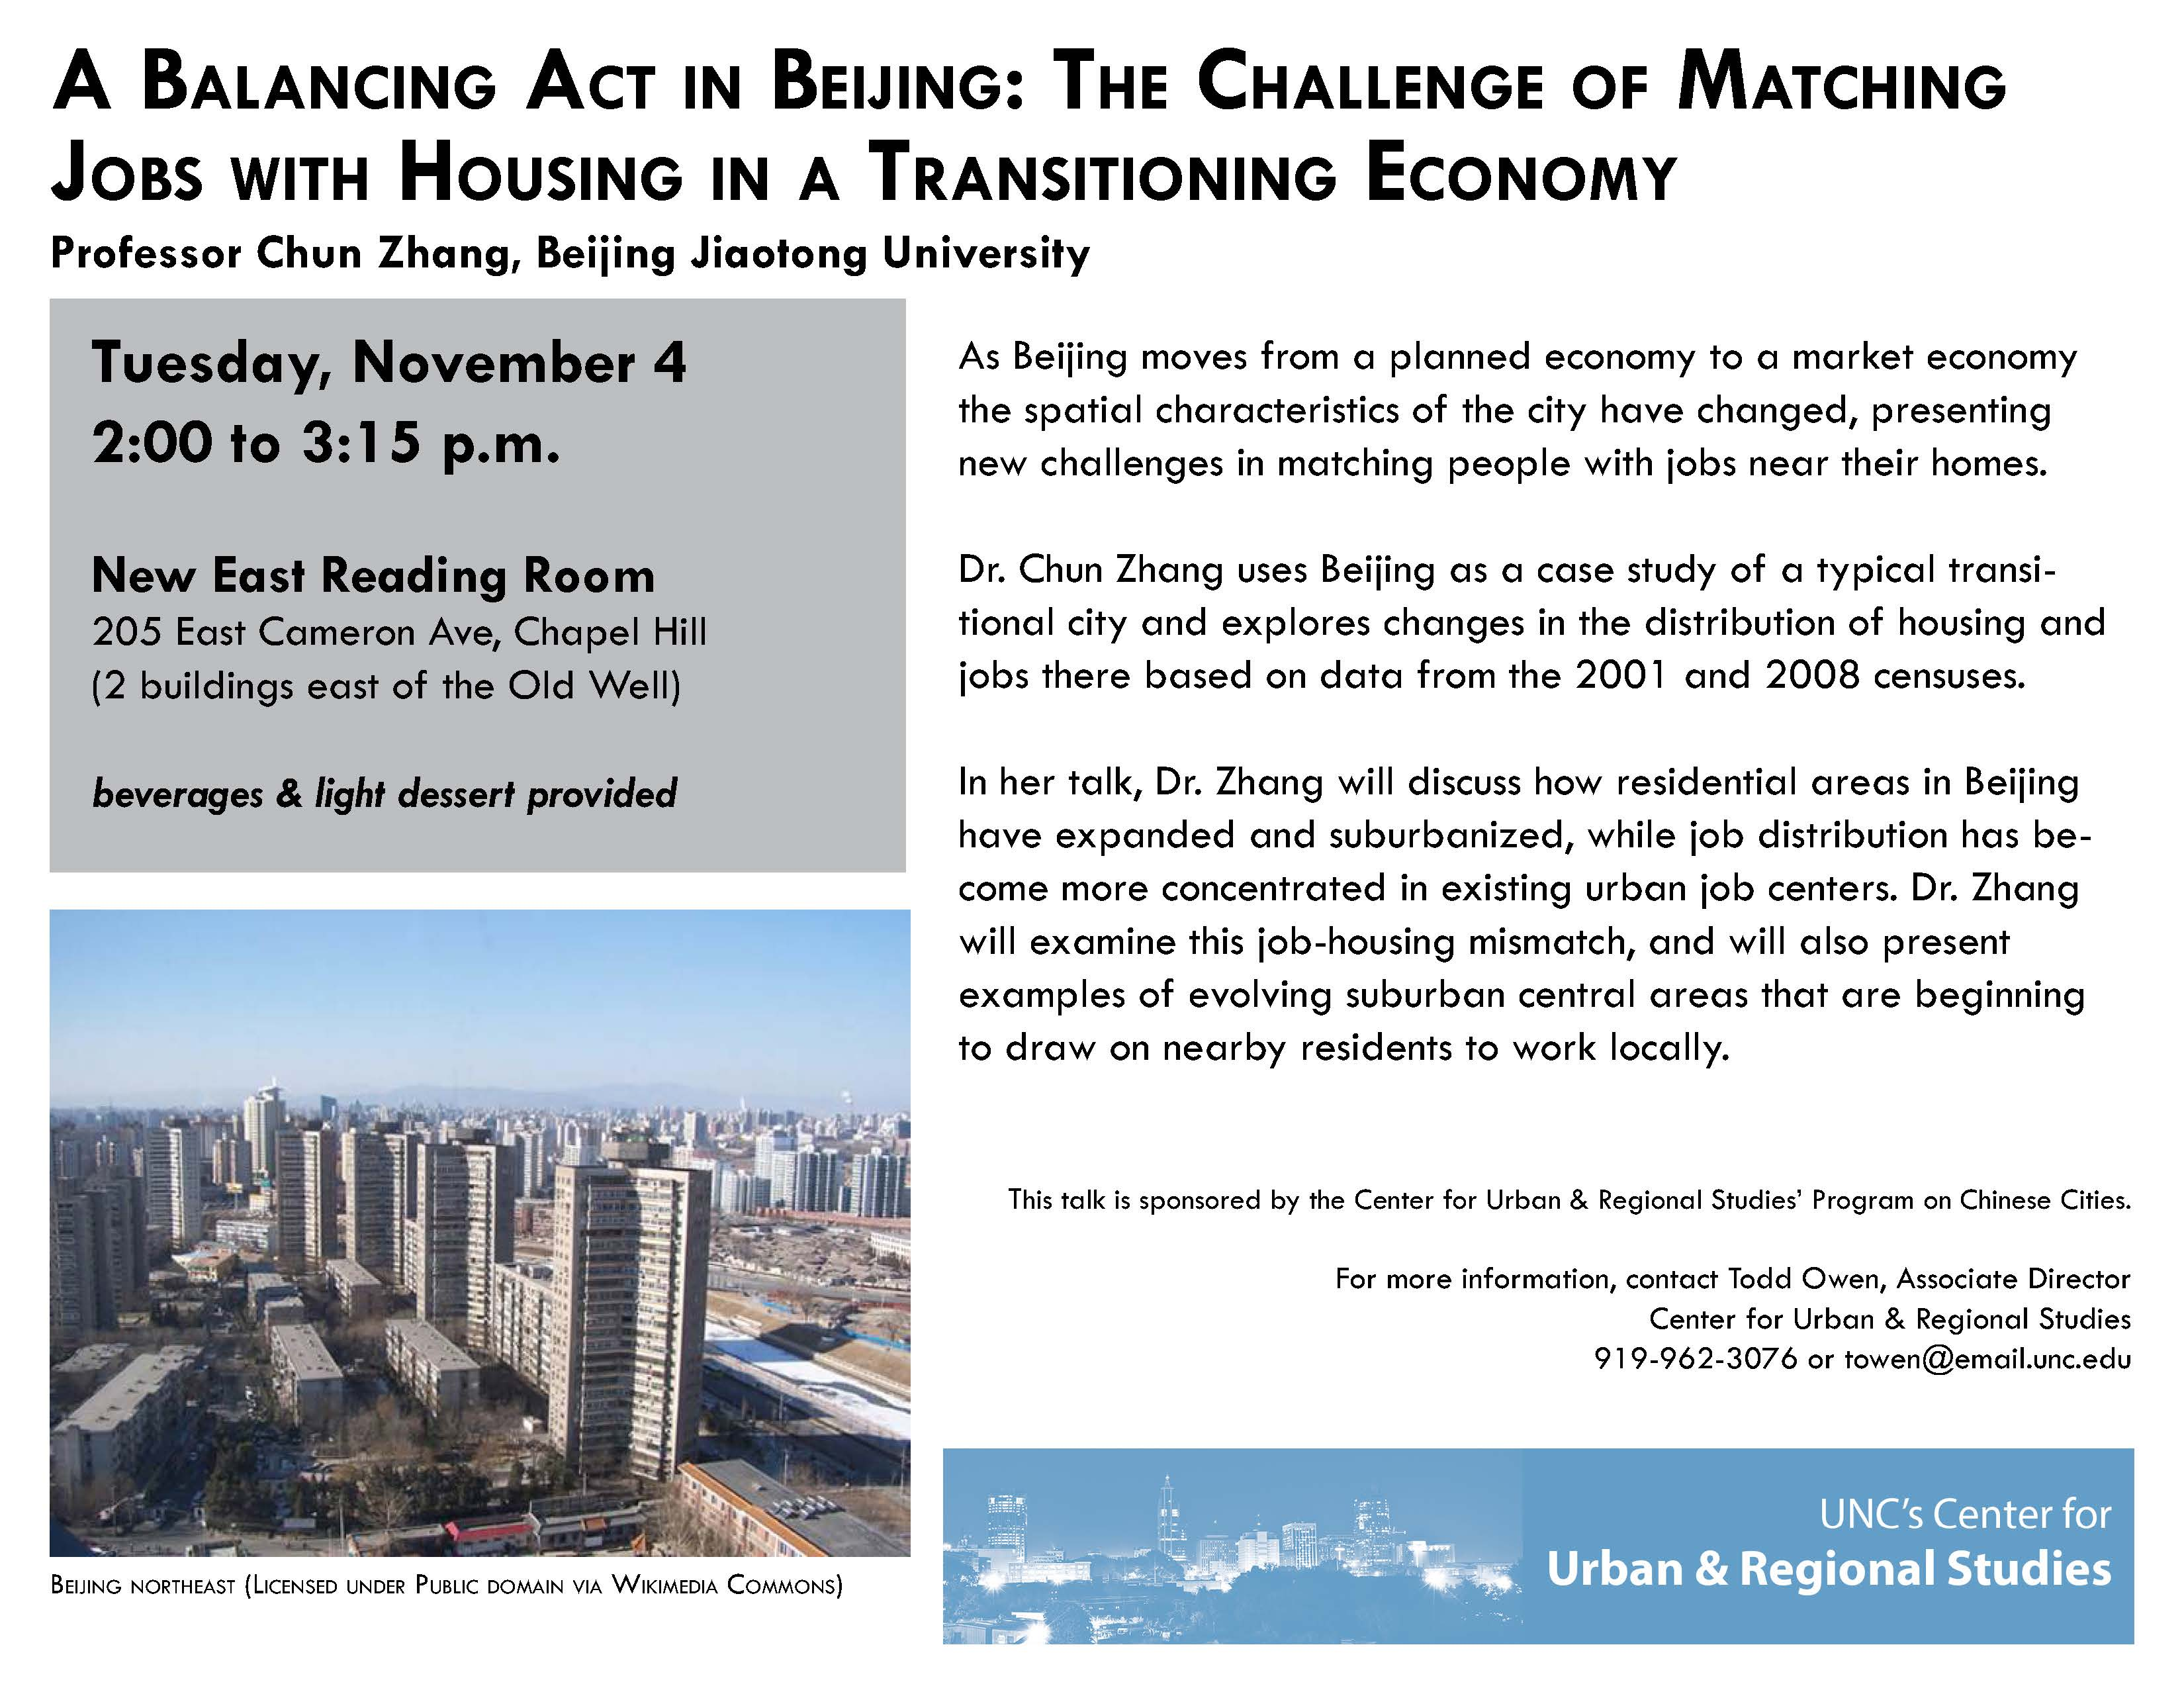 A Balancing Act in Beijing: The Challenge of Matching Jobs with Housing in a Transitioning Economy